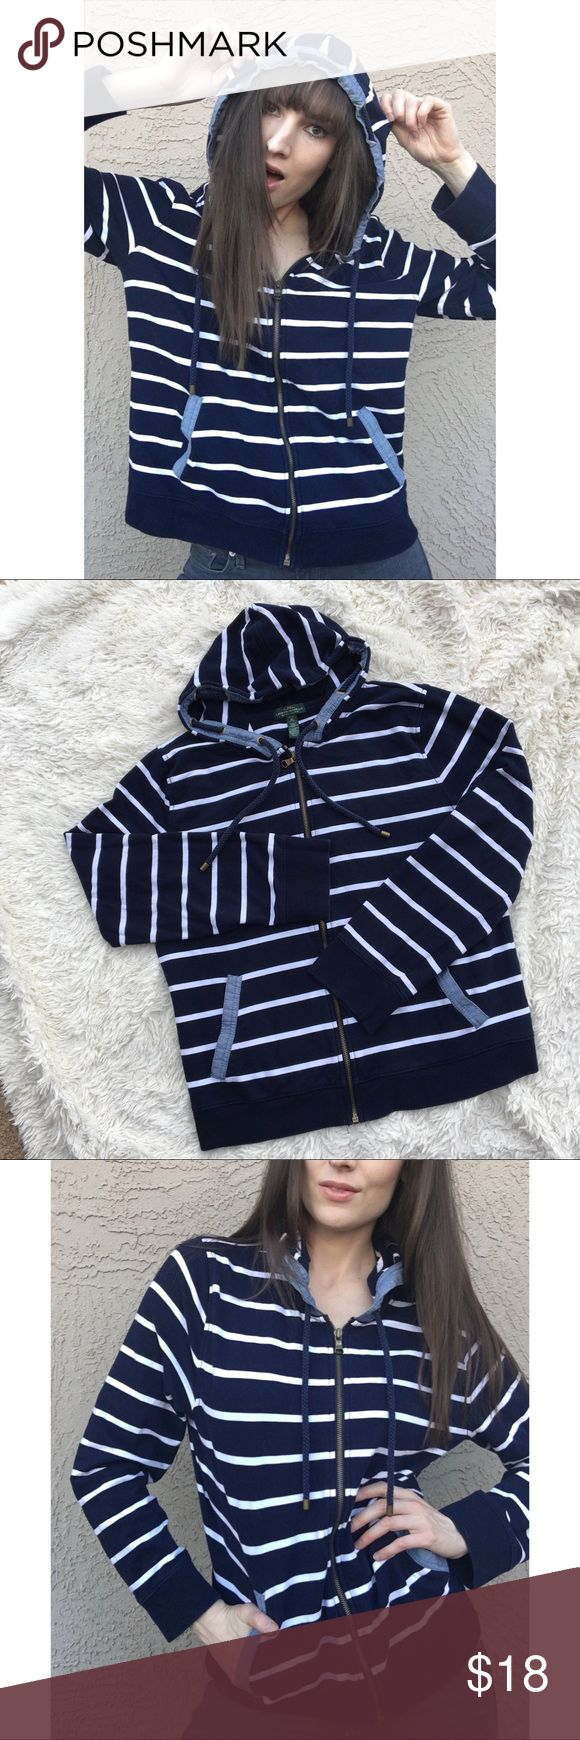 RALPH LAUREN Naitical Striped Zip Hoodie Nautical navy & white striped full-zip hoodie with chambray trim details. Two front pockets and trimmed hood. One very small spot on the bottom back left, as shown in photo. ✨OFFERS WELCOME✨ Pit to Pit: , Length: . For reference, I'm 5'9 & usually wear an xs/s. Measurements coming momentarily Lauren Ralph Lauren Tops Sweatshirts & Hoodies